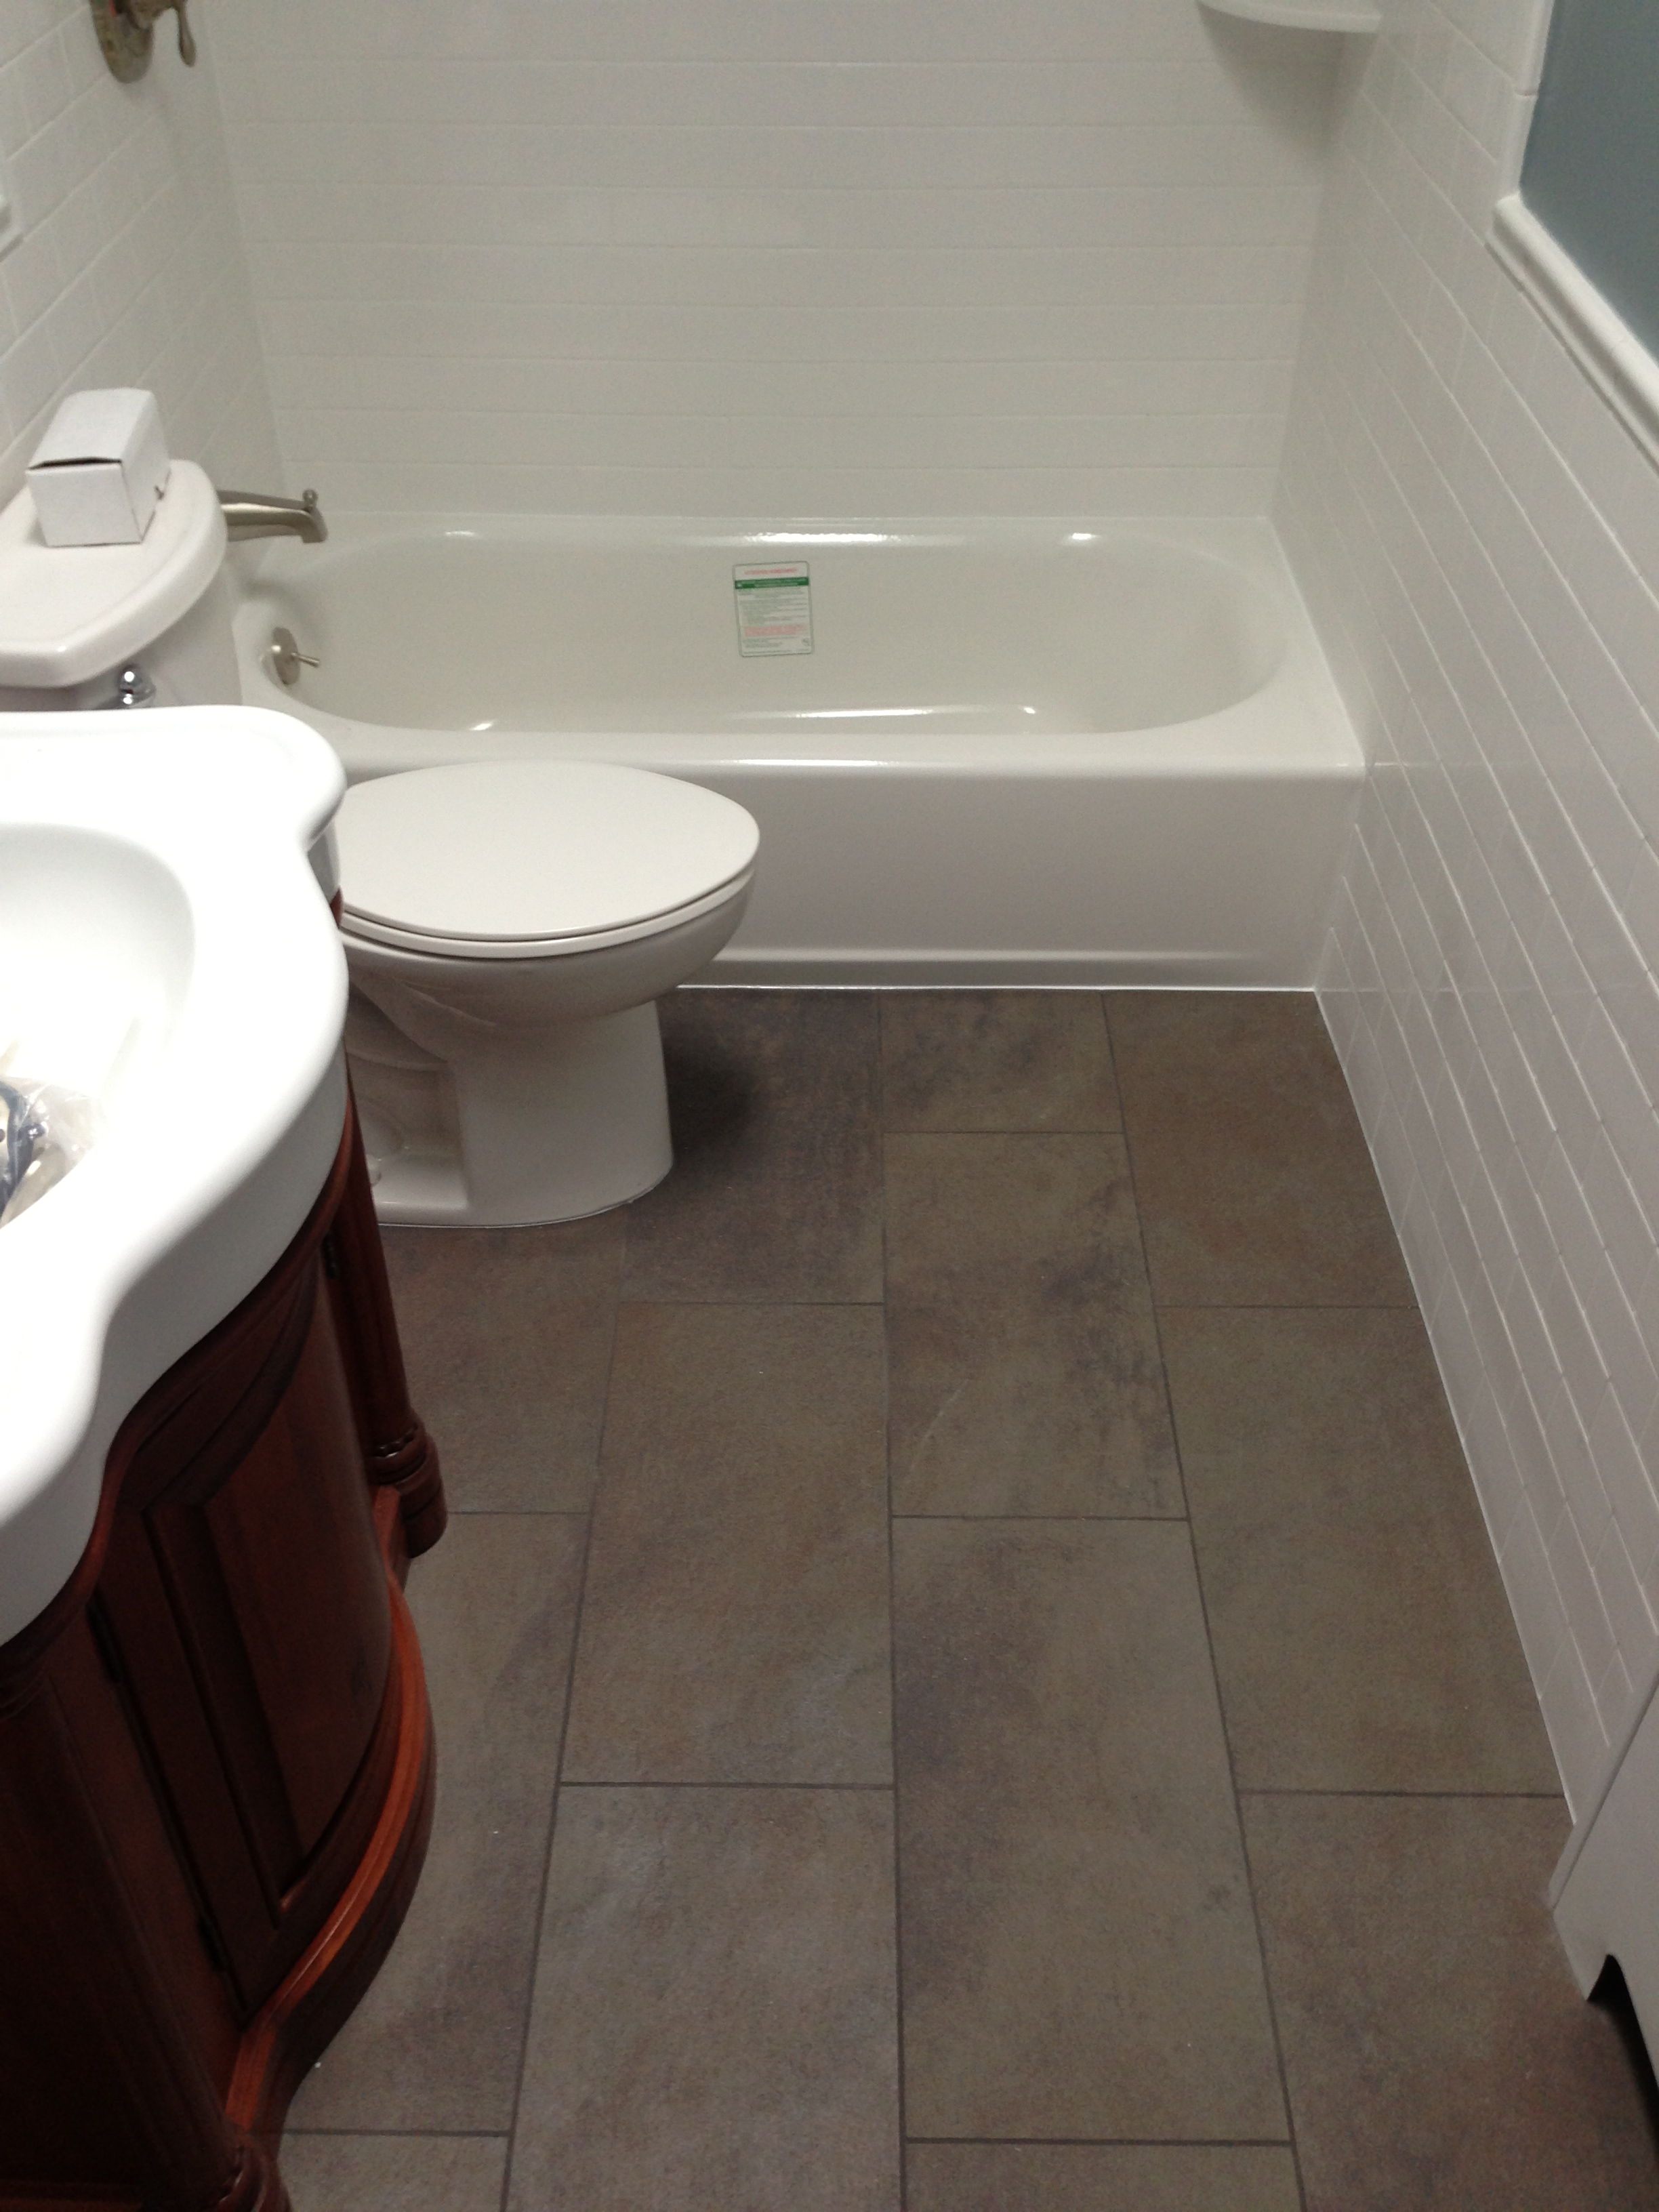 Large Tile Small Bathroom Contractor Talk Professional Construction And Remodeling Forum